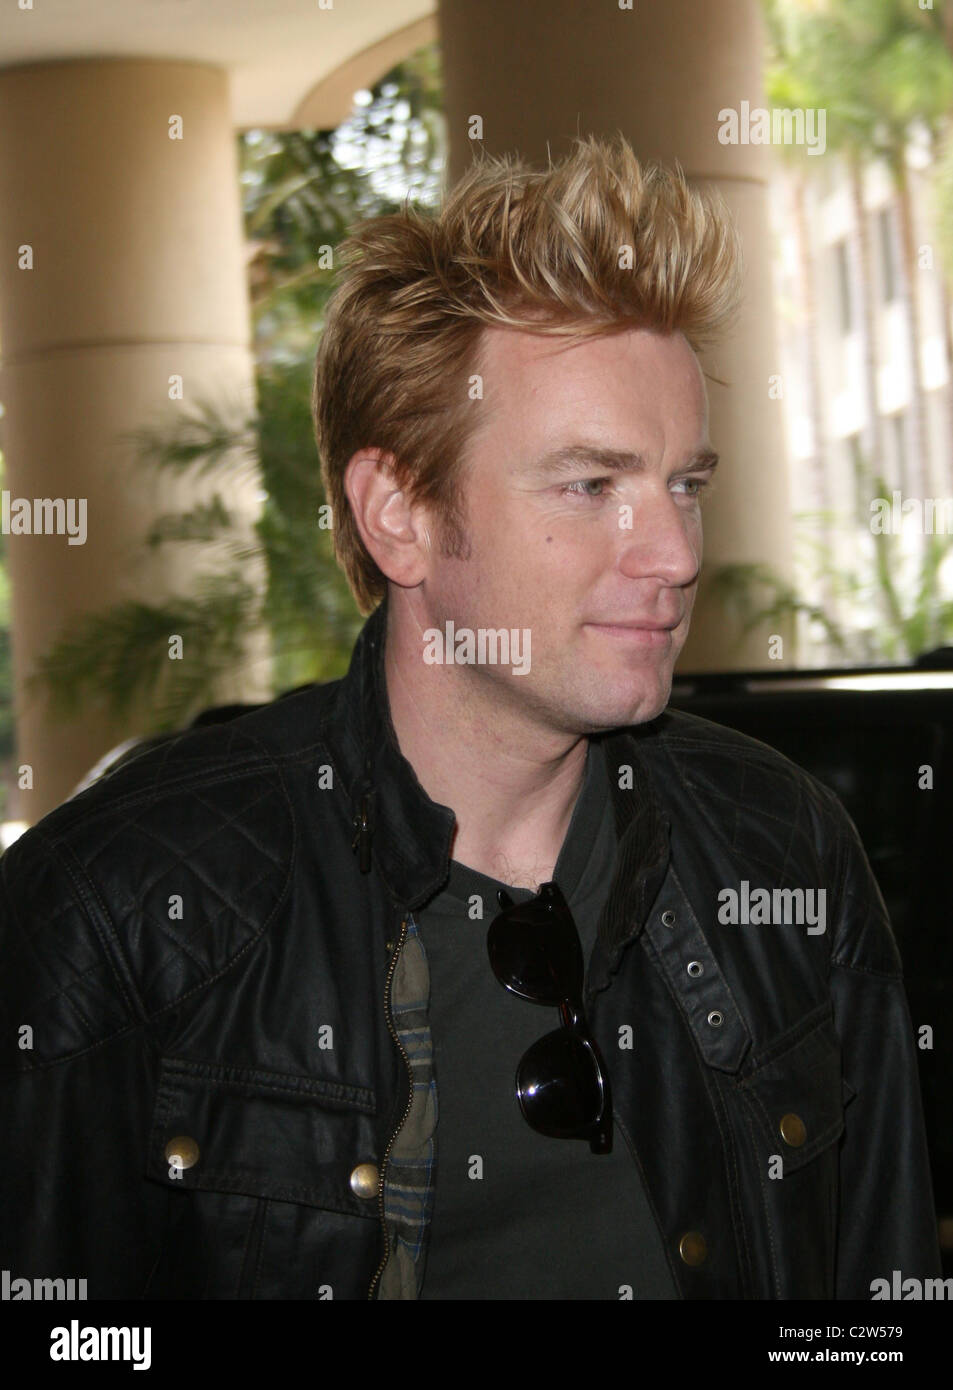 Ewan Mcgregor Promotes Long Way Down At The Summer 2008 Tca Session Stock Photo Alamy